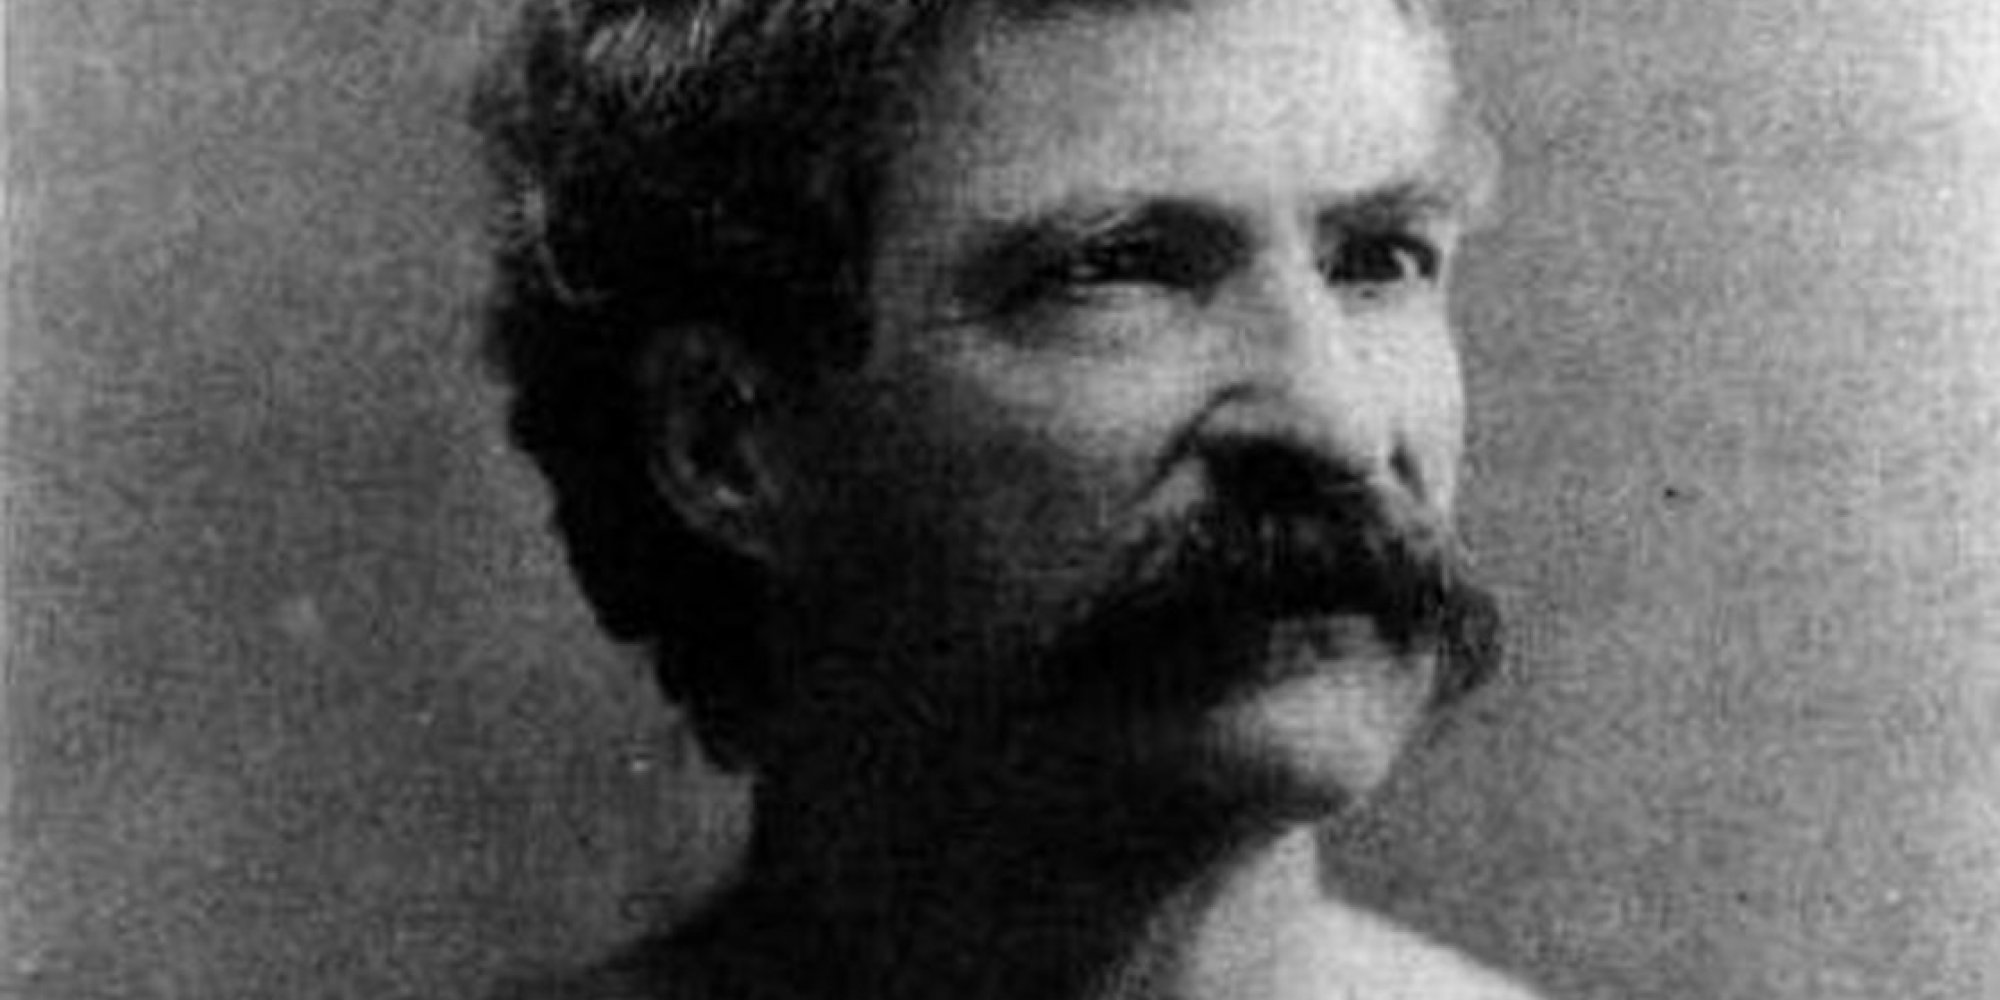 american lit mark twain essay The man, mark twain essays - often referred to as the father of american literature, a well-known american humorist and author, mark twain was born november 30, 1835, in florida, missouri.